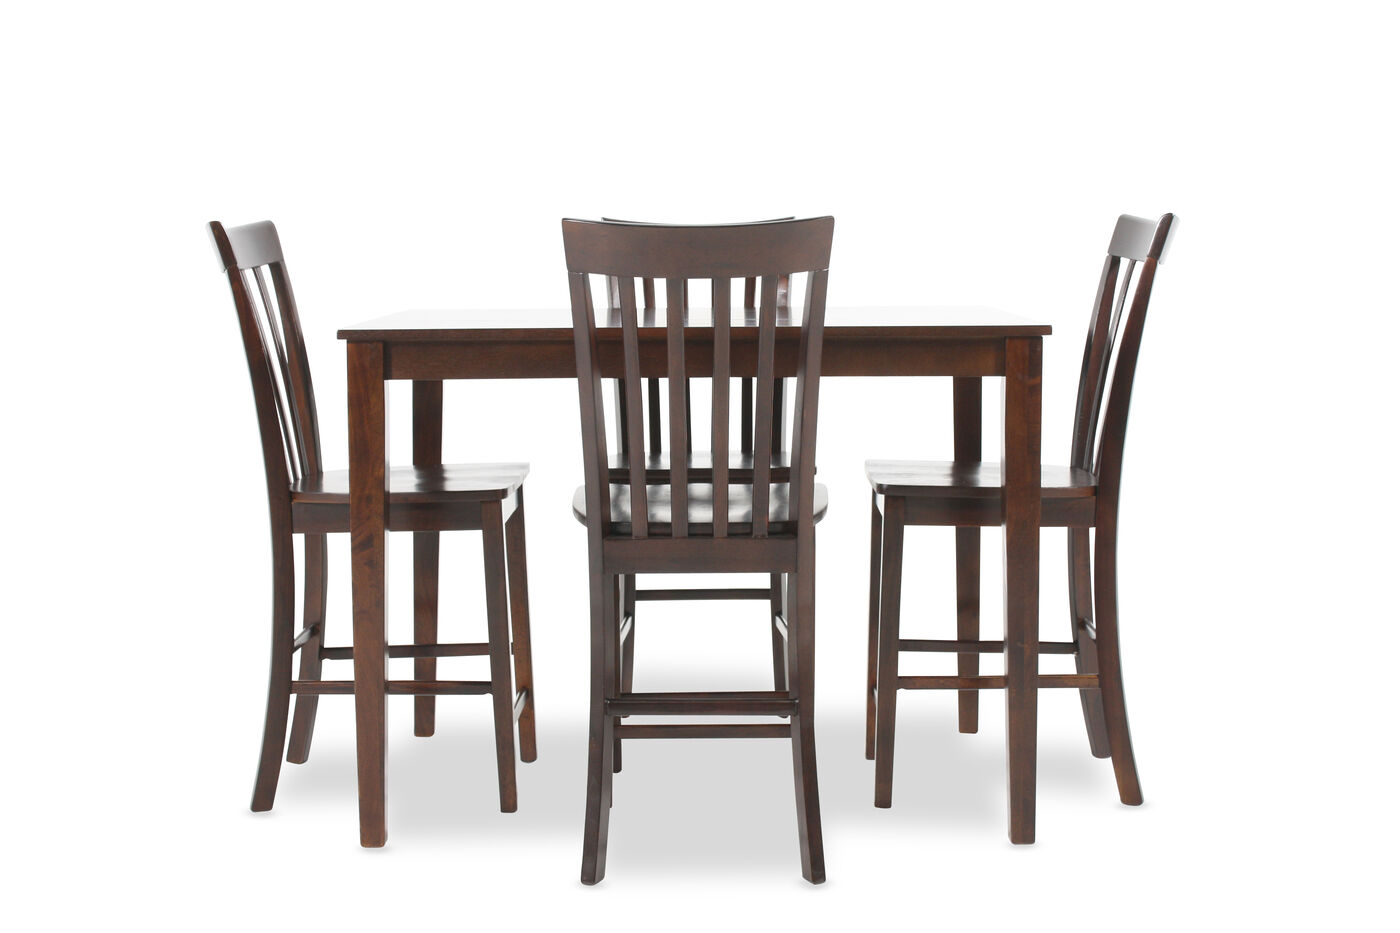 Ashley Hyland Five Piece Pub Set Mathis Brothers Furniture : ASH D258223 A from www.mathisbrothers.com size 1400 x 933 jpeg 86kB